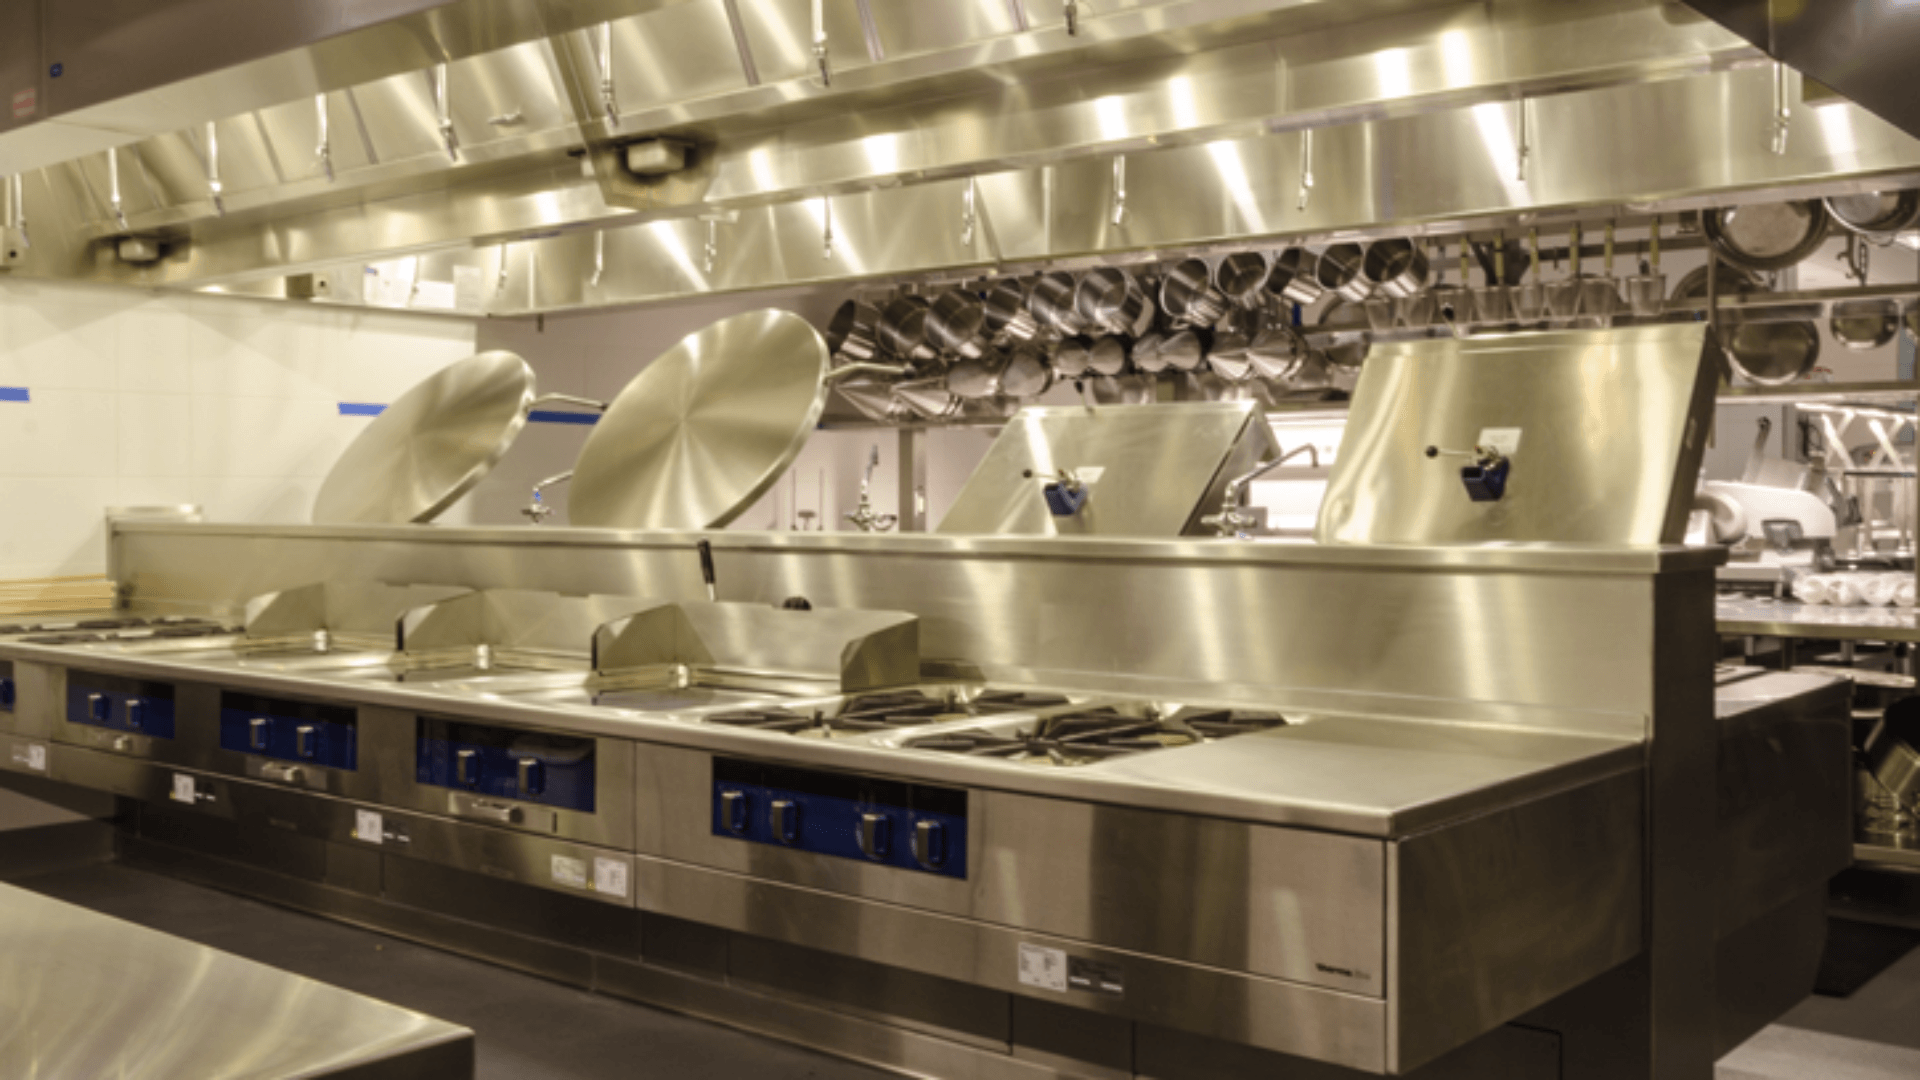 Lodging Consumer Dining Trends and your HVAC system